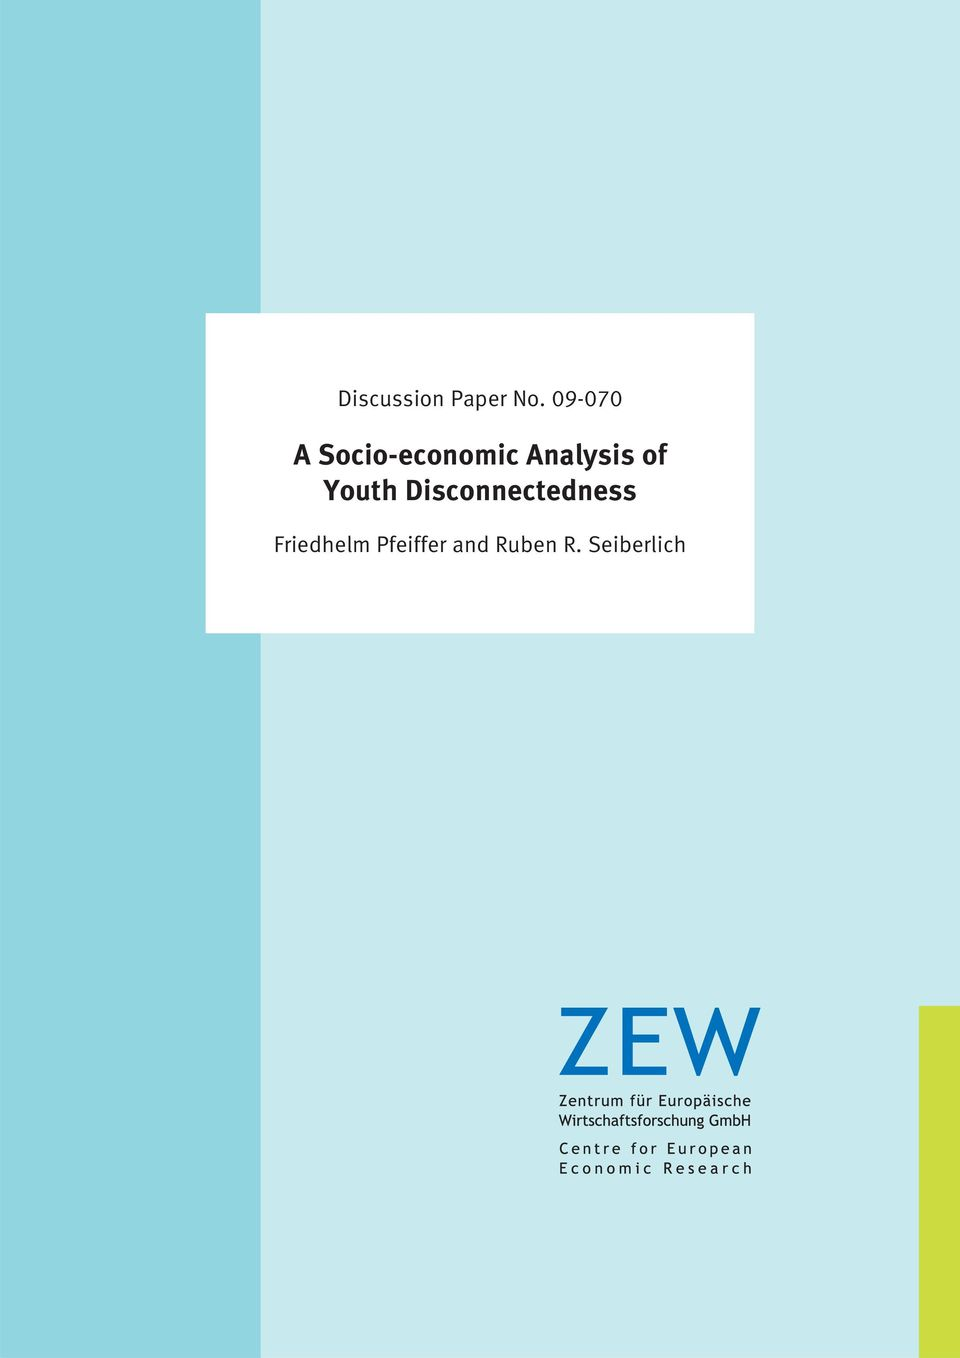 Analysis of Youth